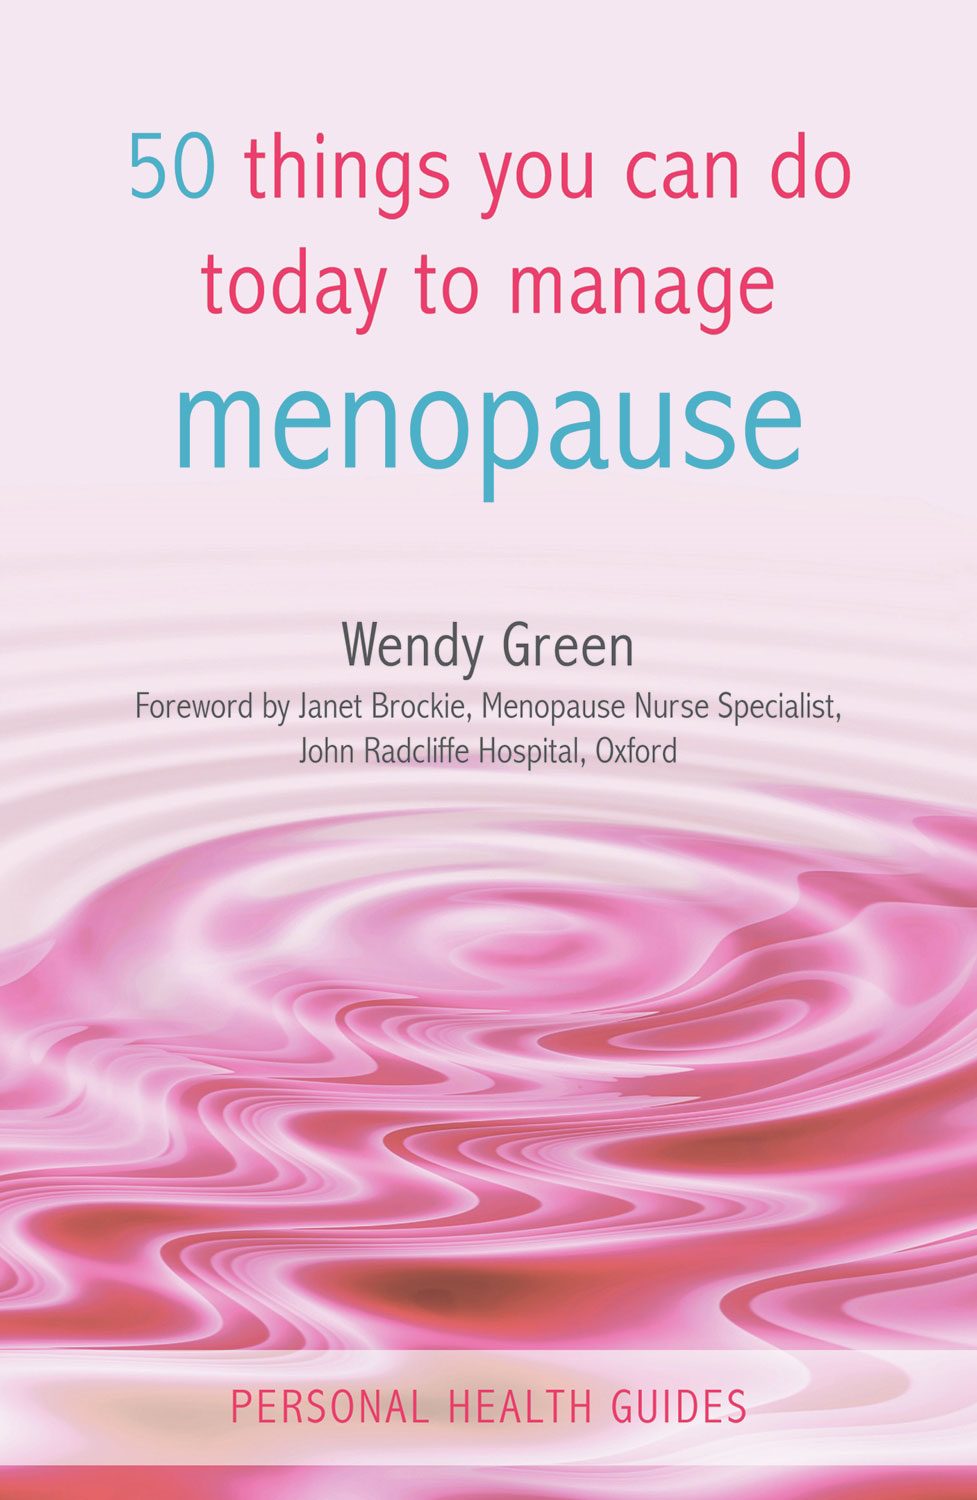 50 Things You Can Do Today to Manage Menopause By: Wendy Green